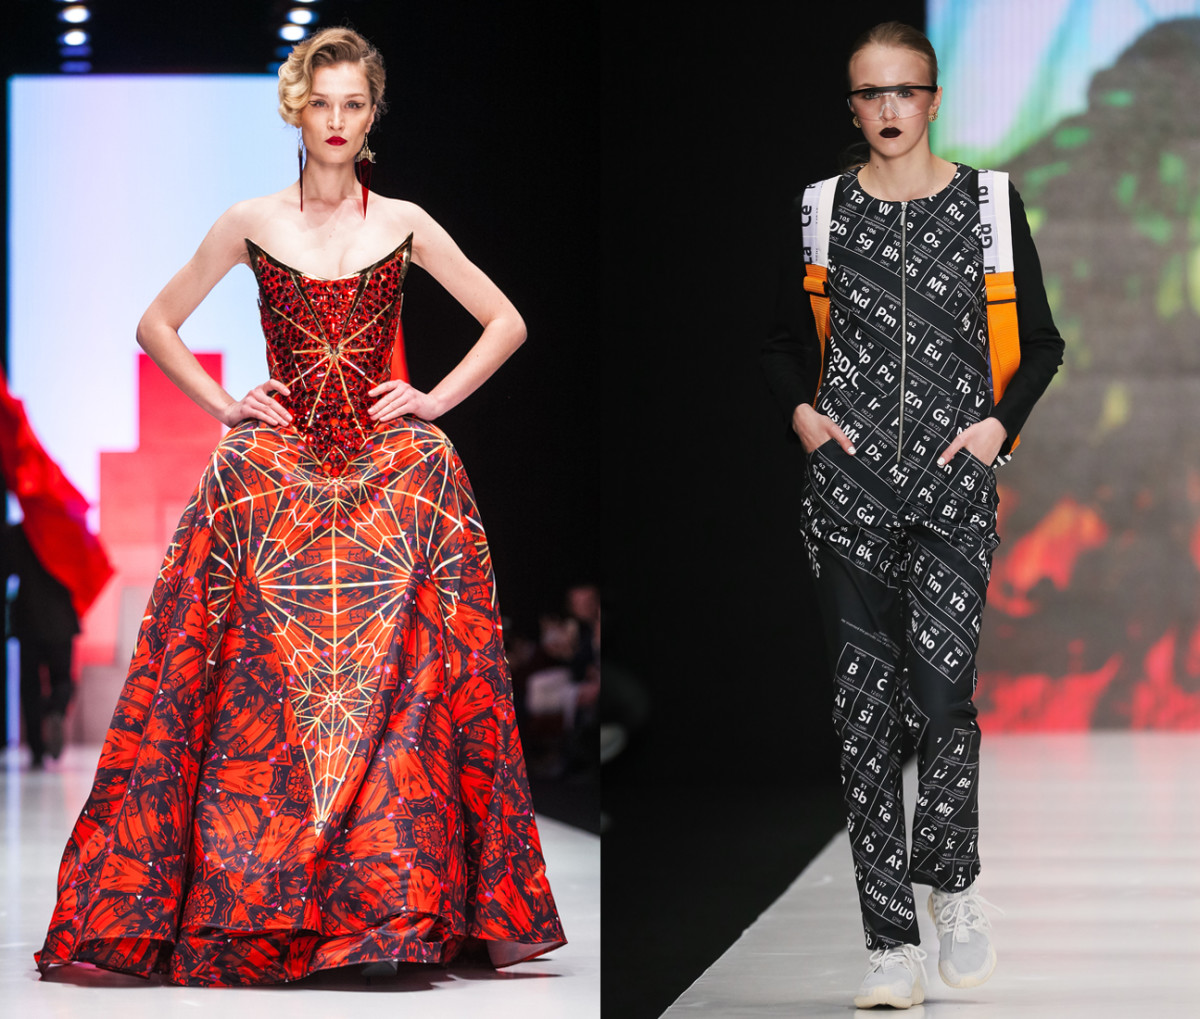 Left: A Dimaneu gown covered in iconic Kremlin stars. Right: Dasha Gauser designer her fall collection around fellow Russian Dmitri Mendeleev's periodic table of elements. Photos: Mercedes Benz Fashion Week Russia